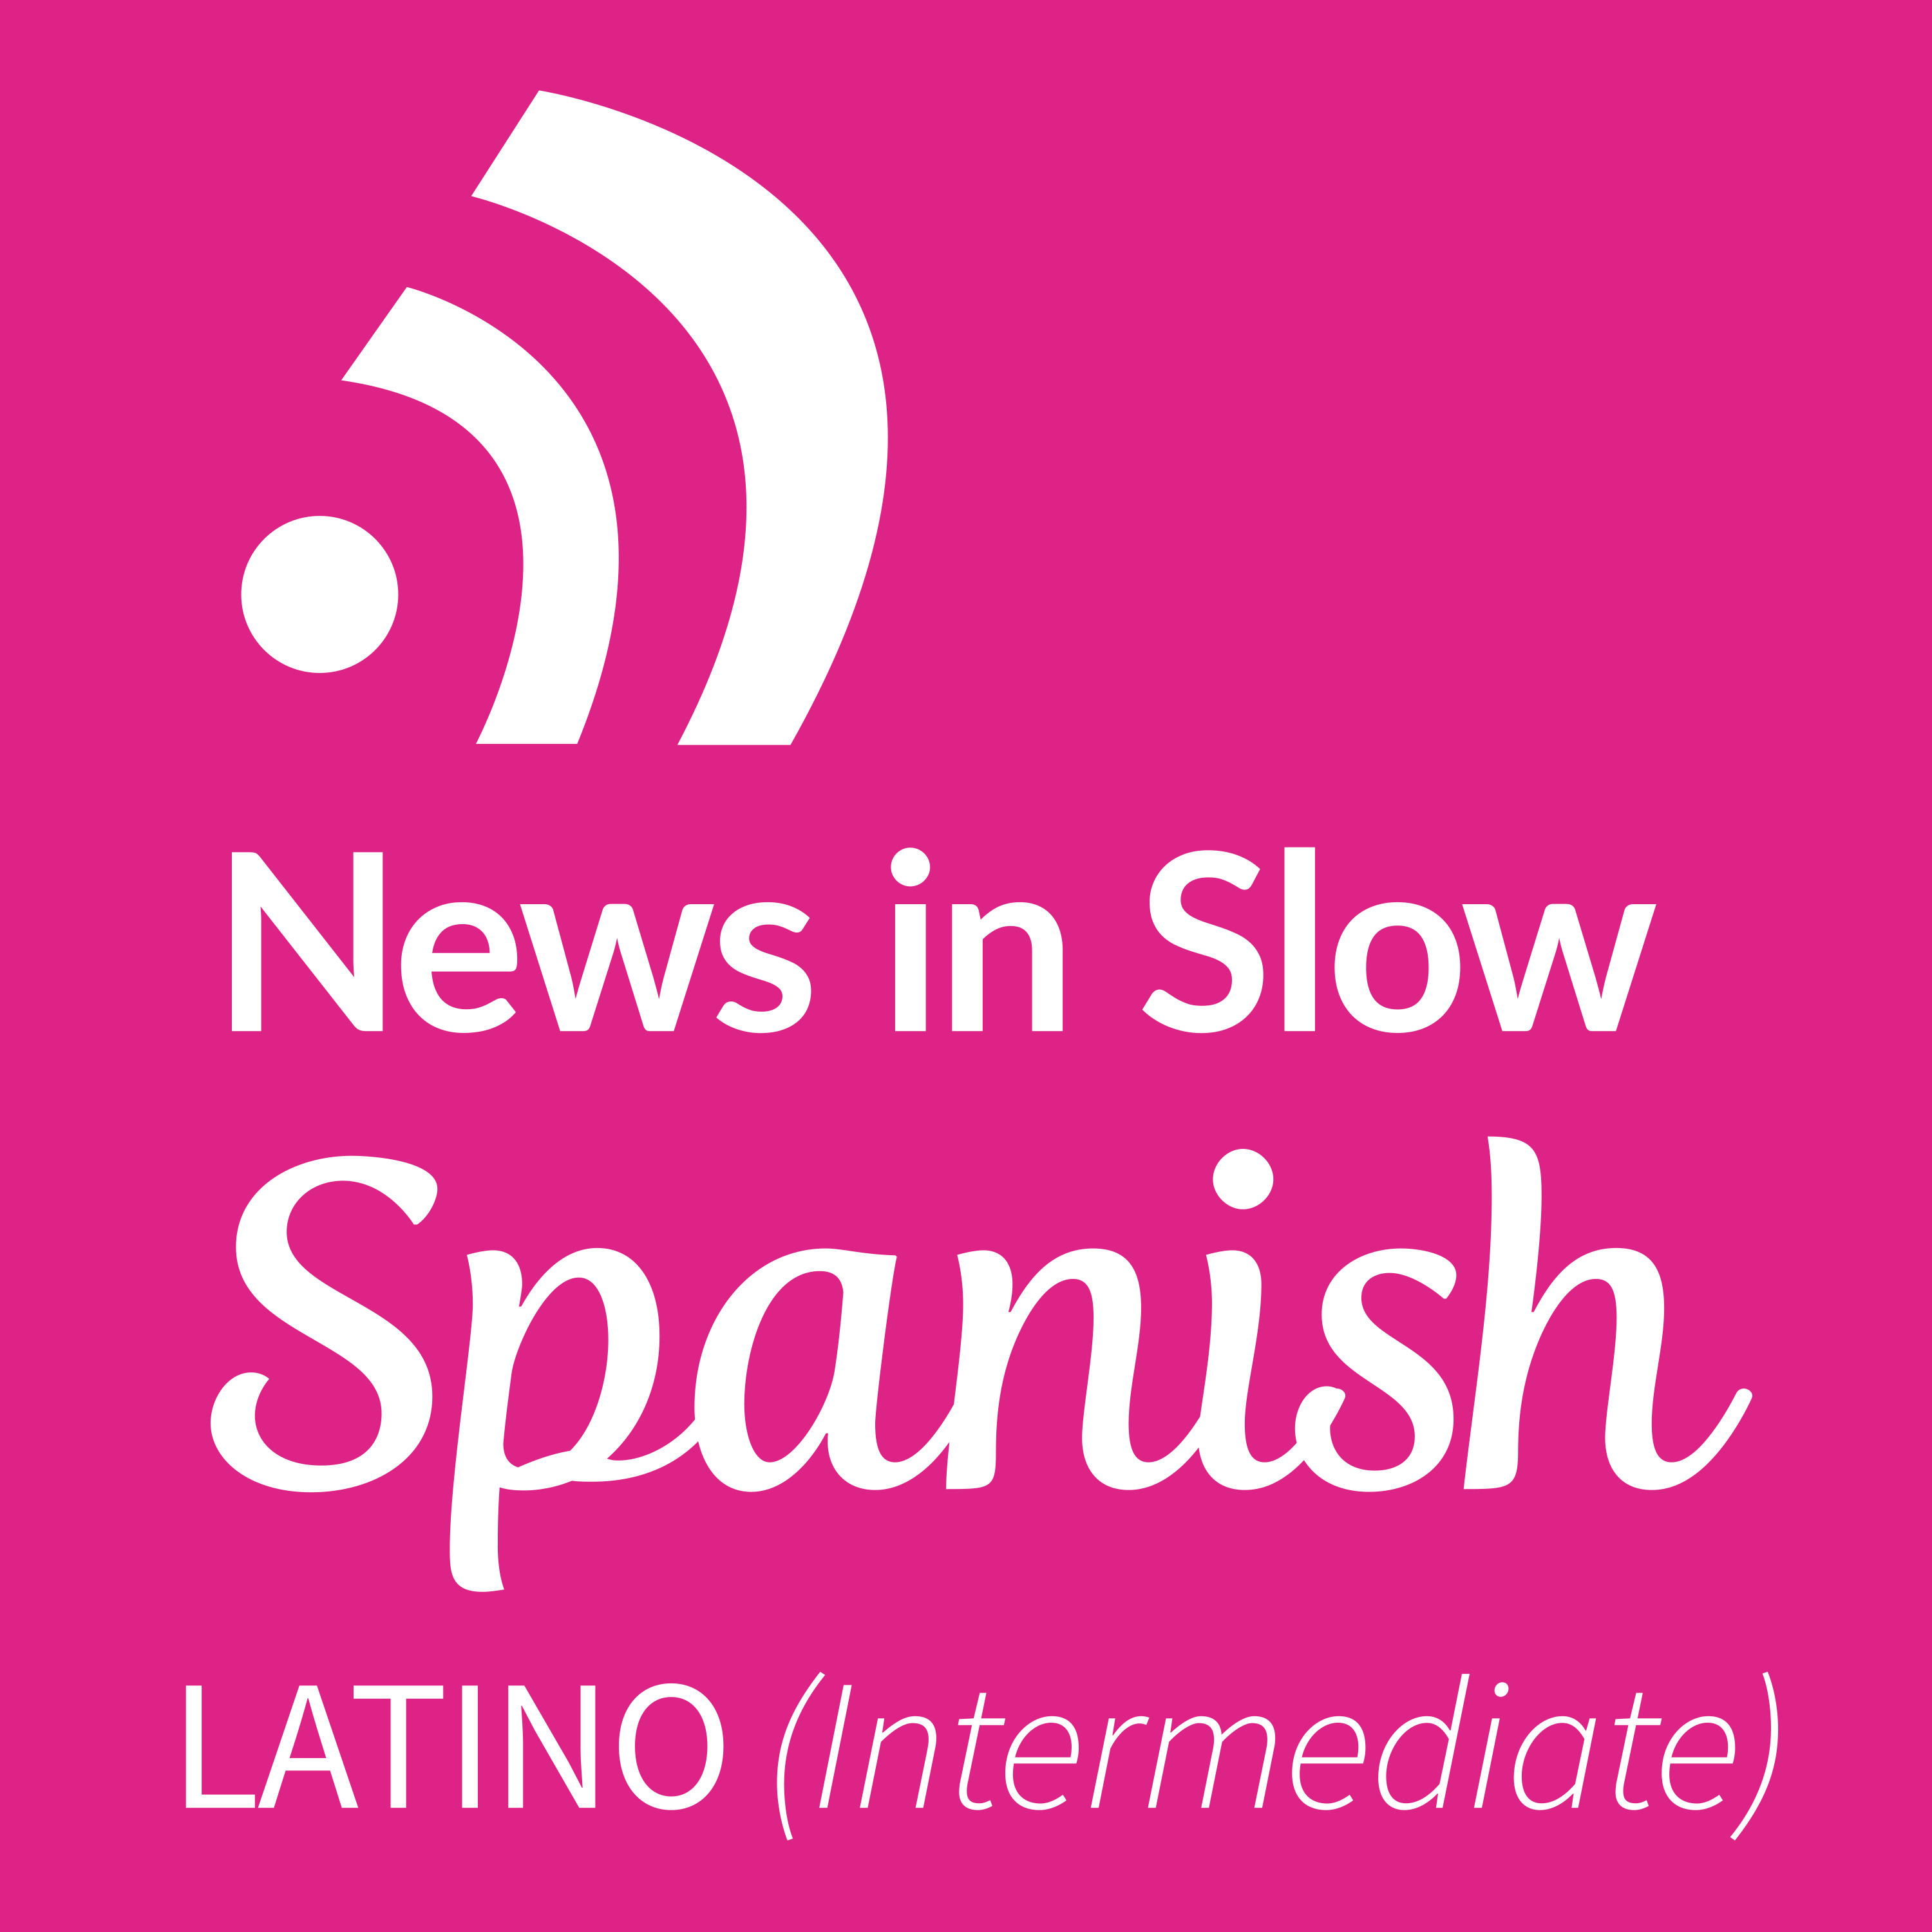 News in Slow Spanish Latino - # 193 - Spanish news, grammar and idiomatic expressions